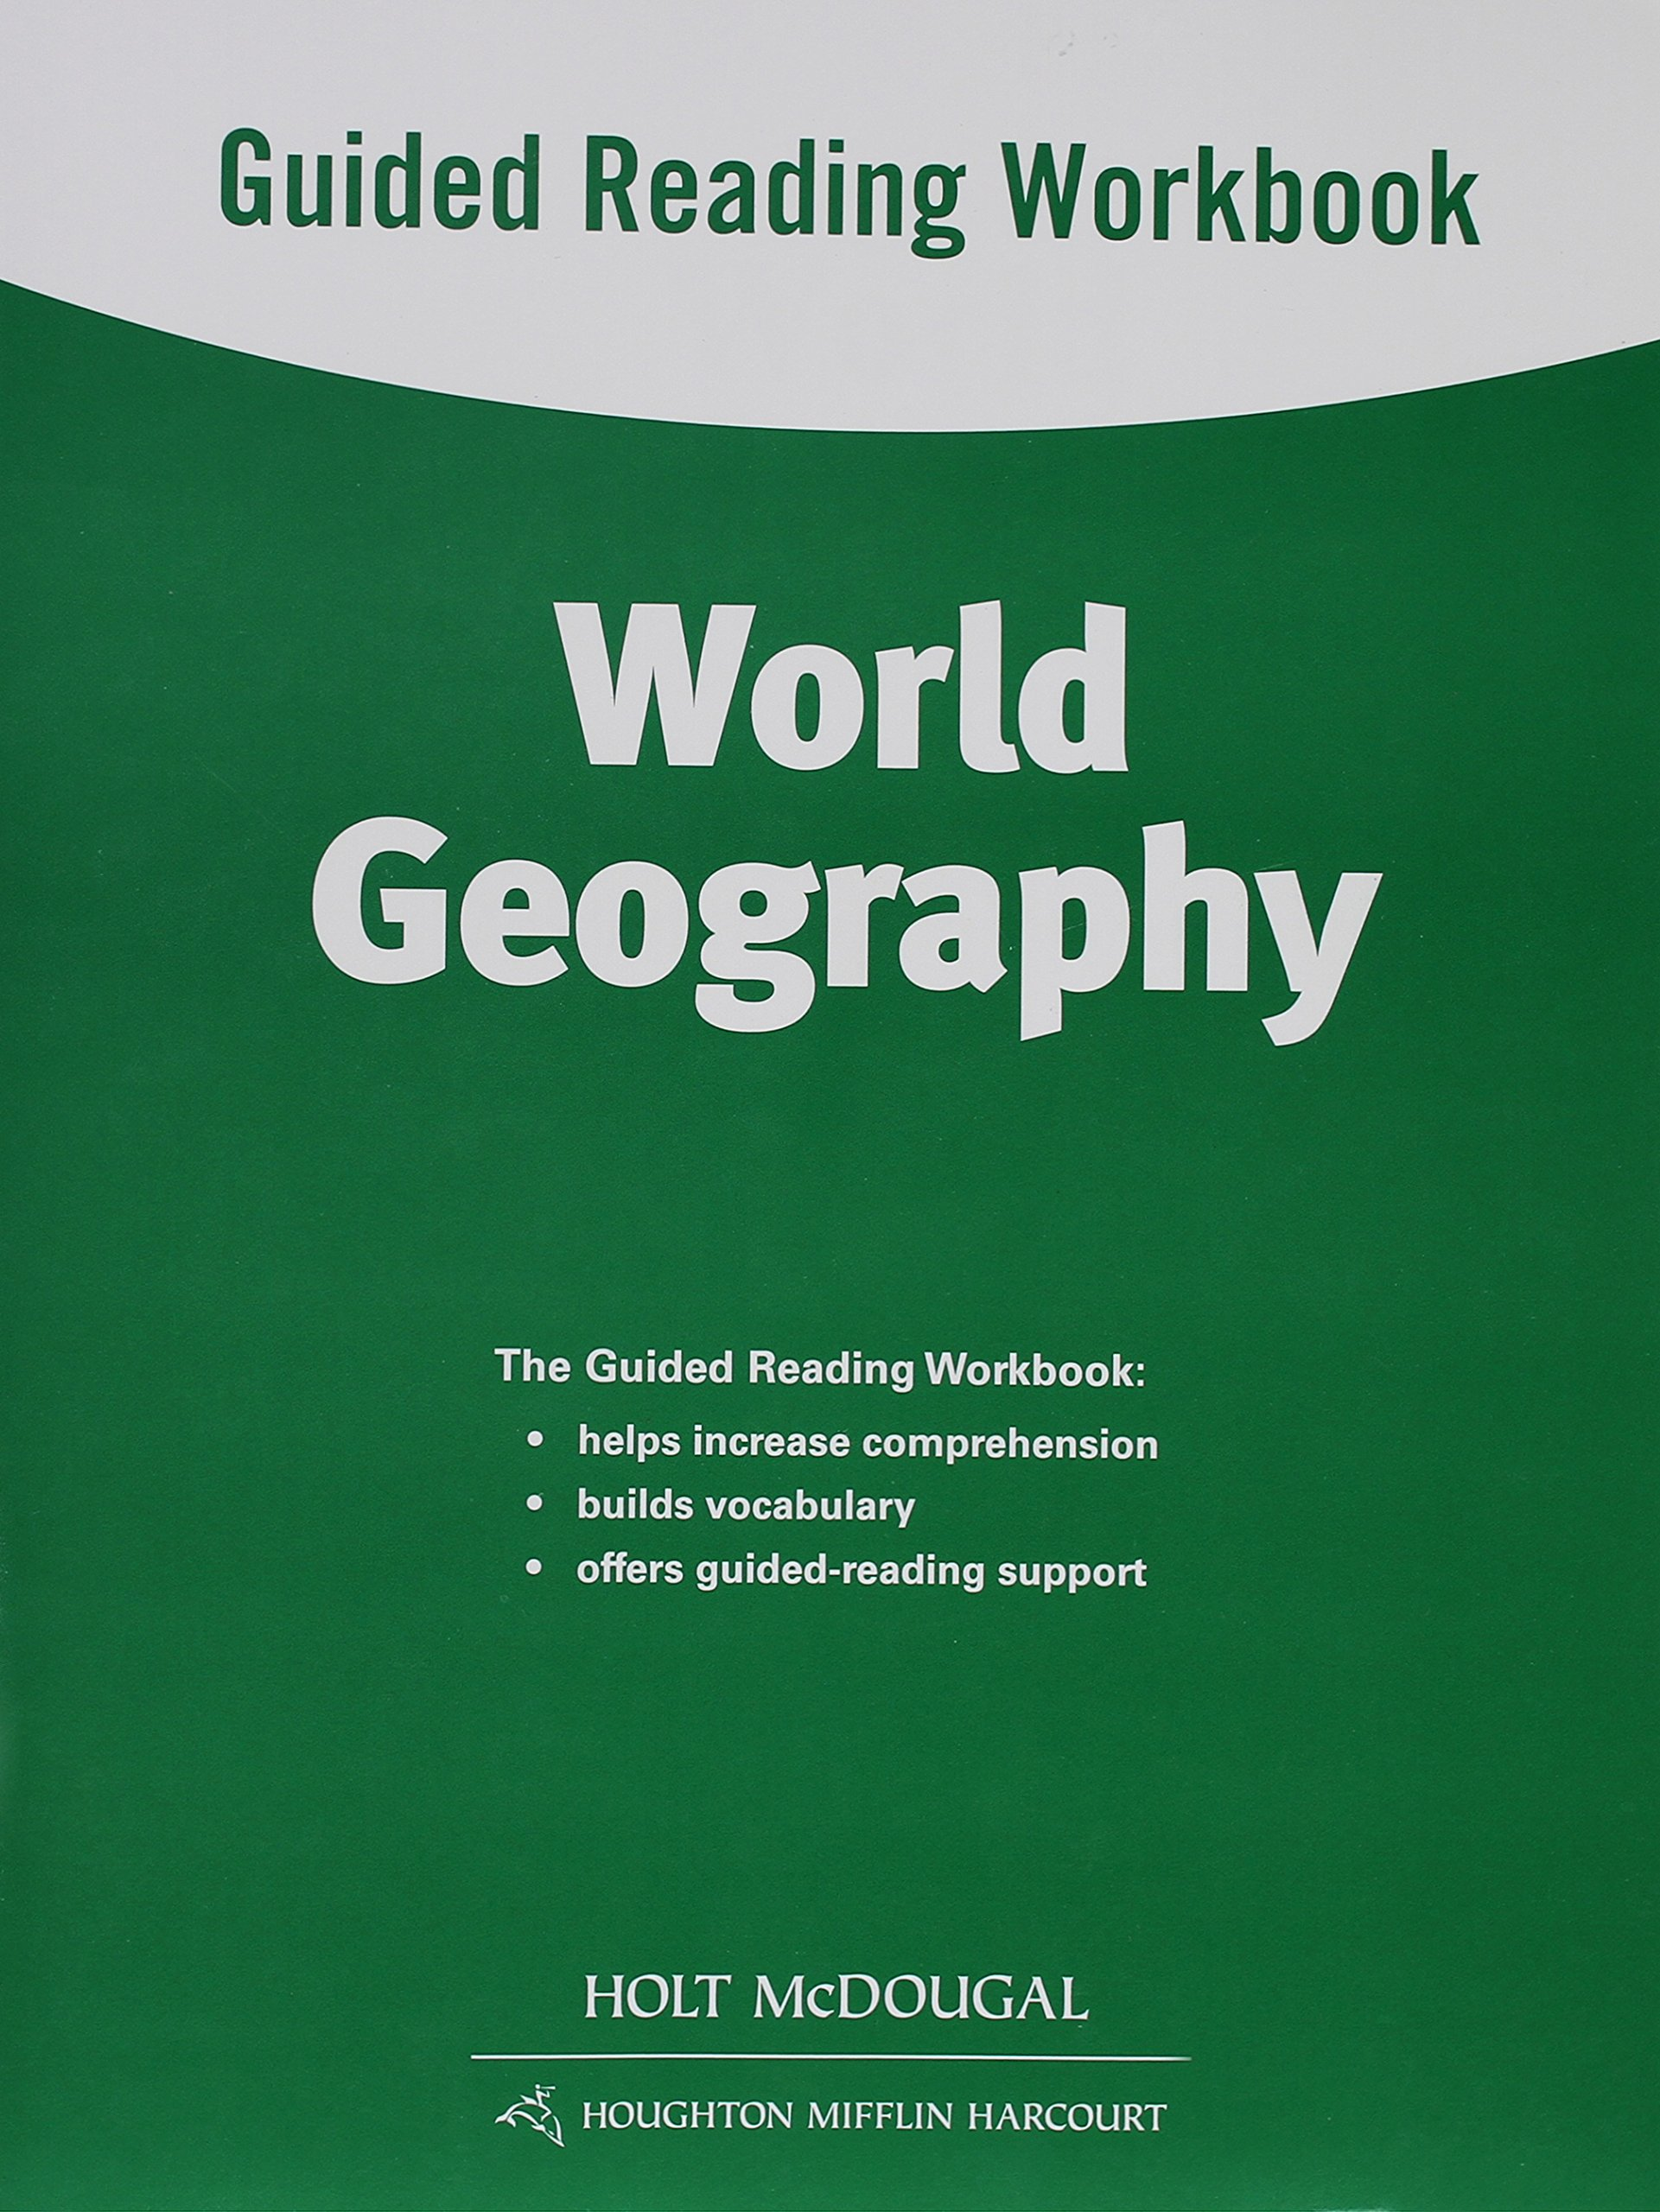 world geography guided reading workbook holt mcdougal rh amazon com world geography guided reading workbook answers world history and geography guided reading answers